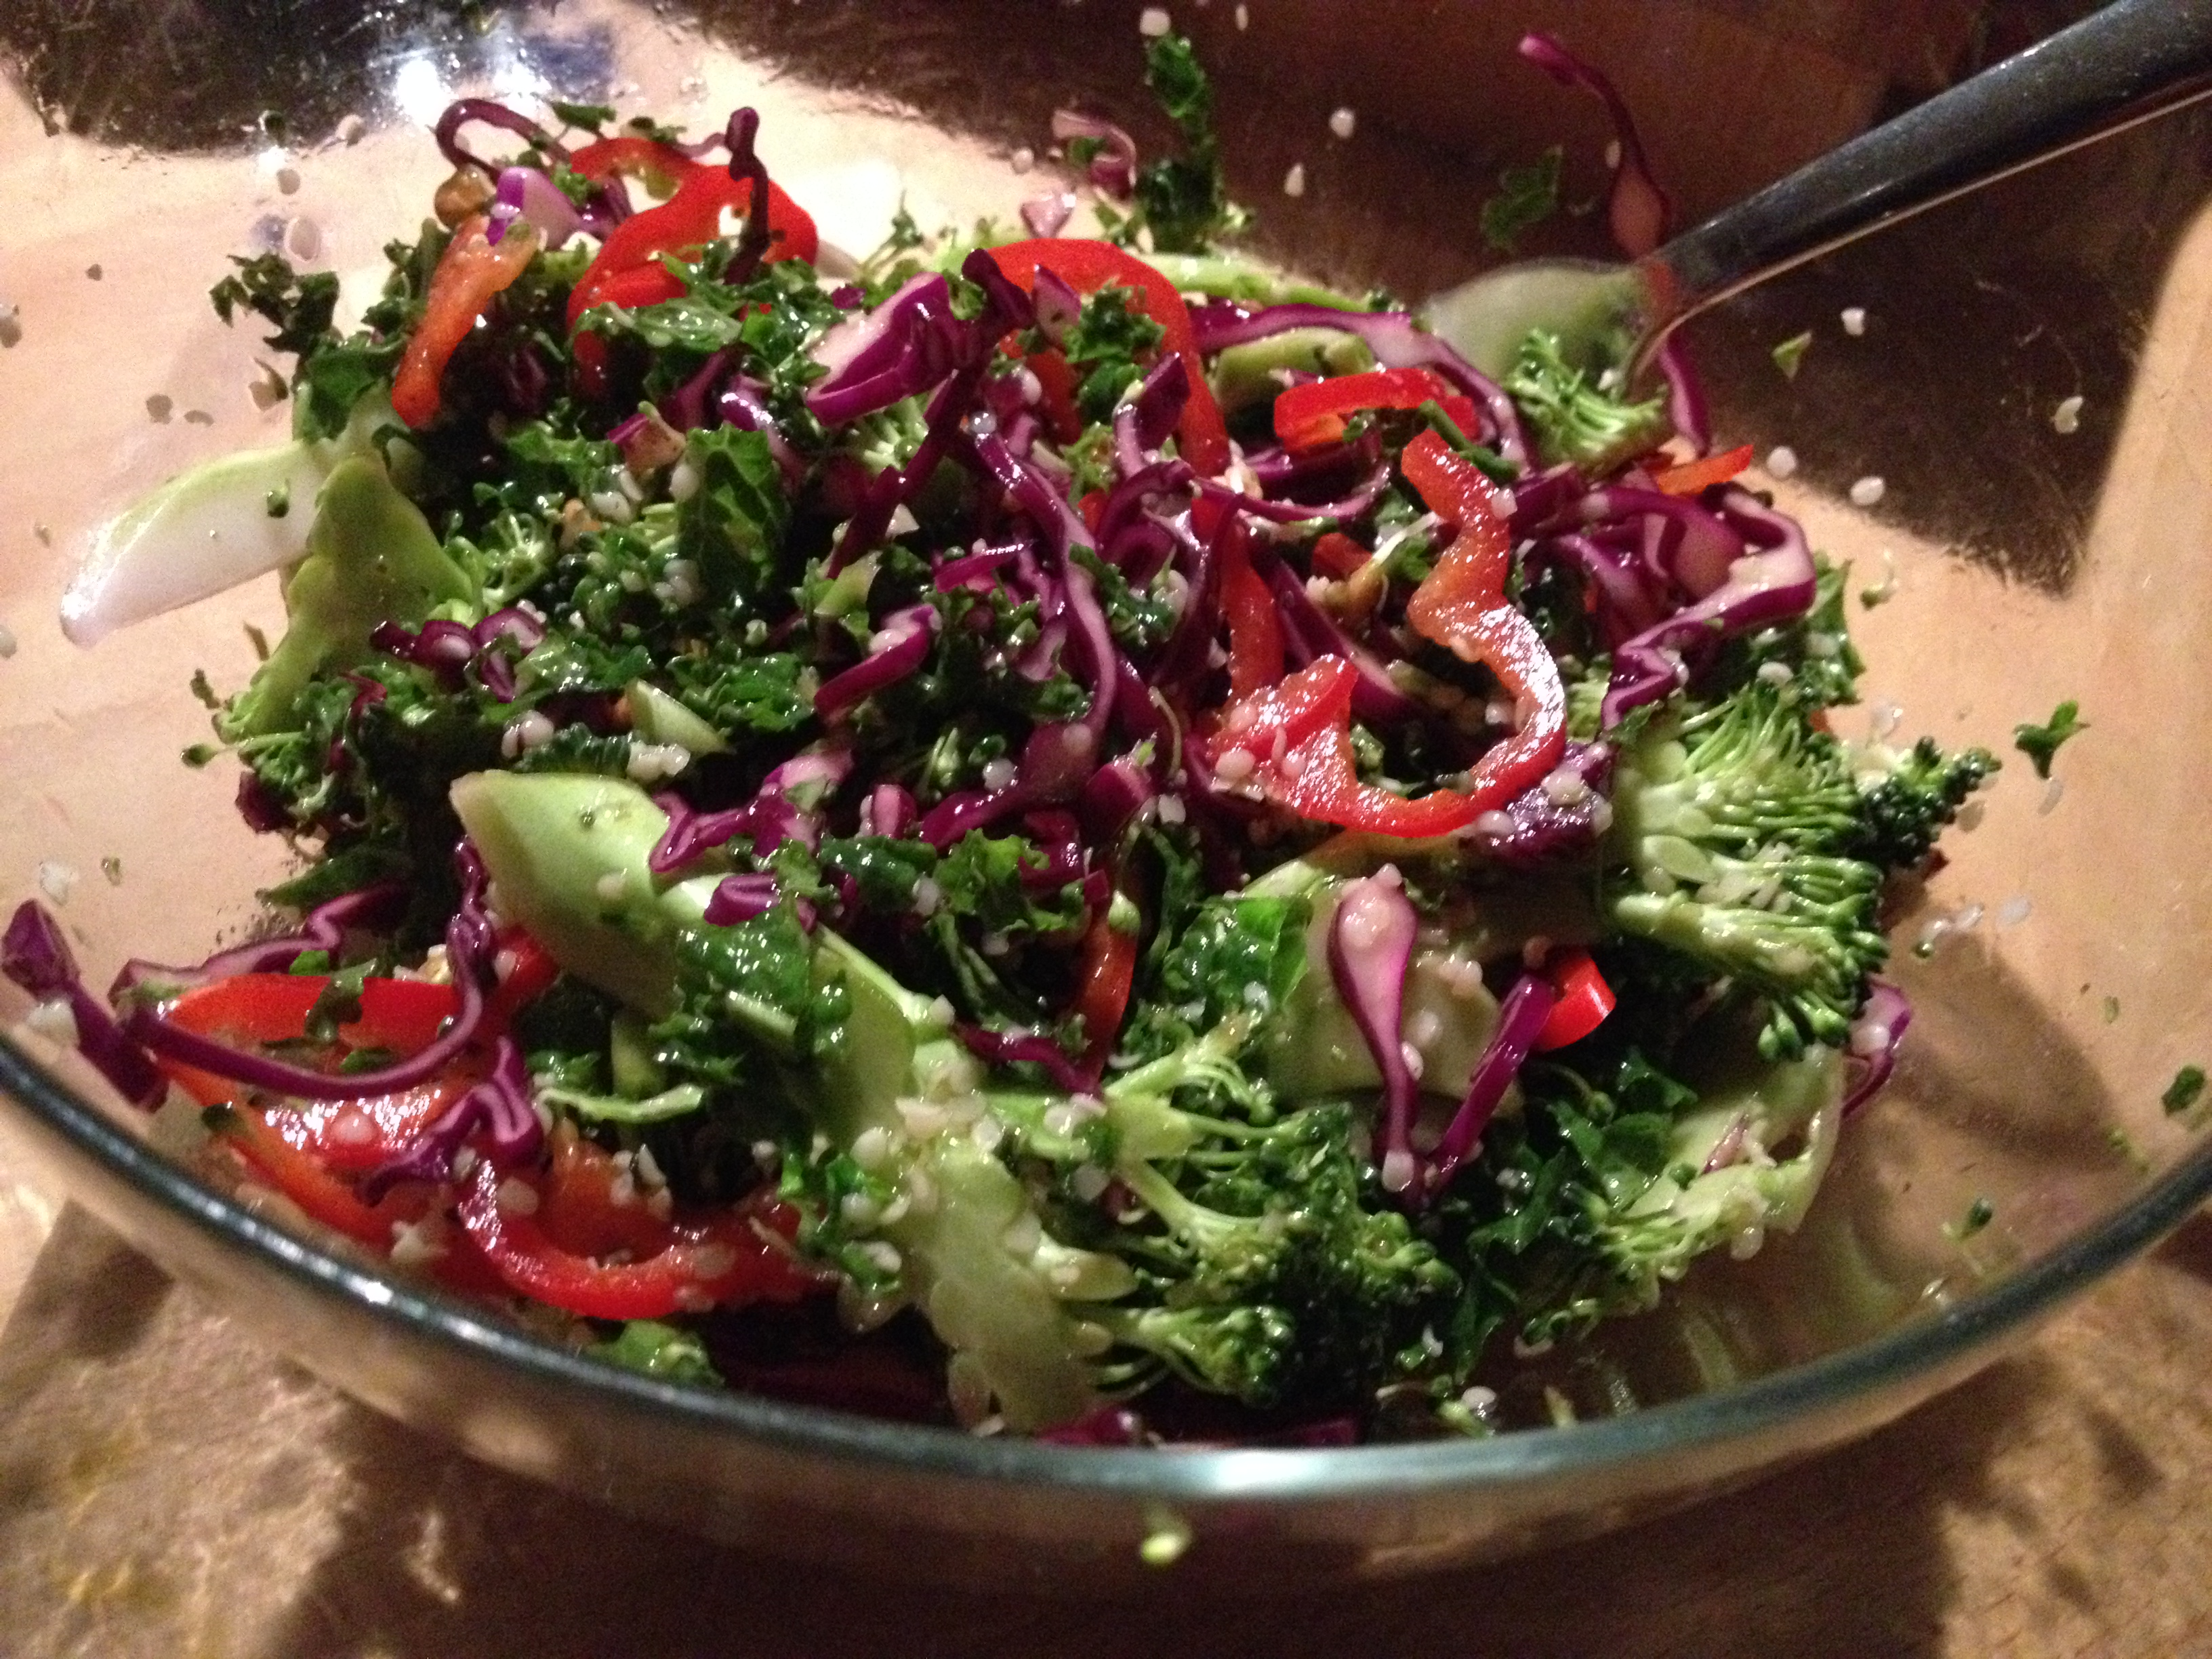 Recipes easy raw food recipes fab after fifty information and quick and easy raw recipes to help you eat more greens forumfinder Image collections